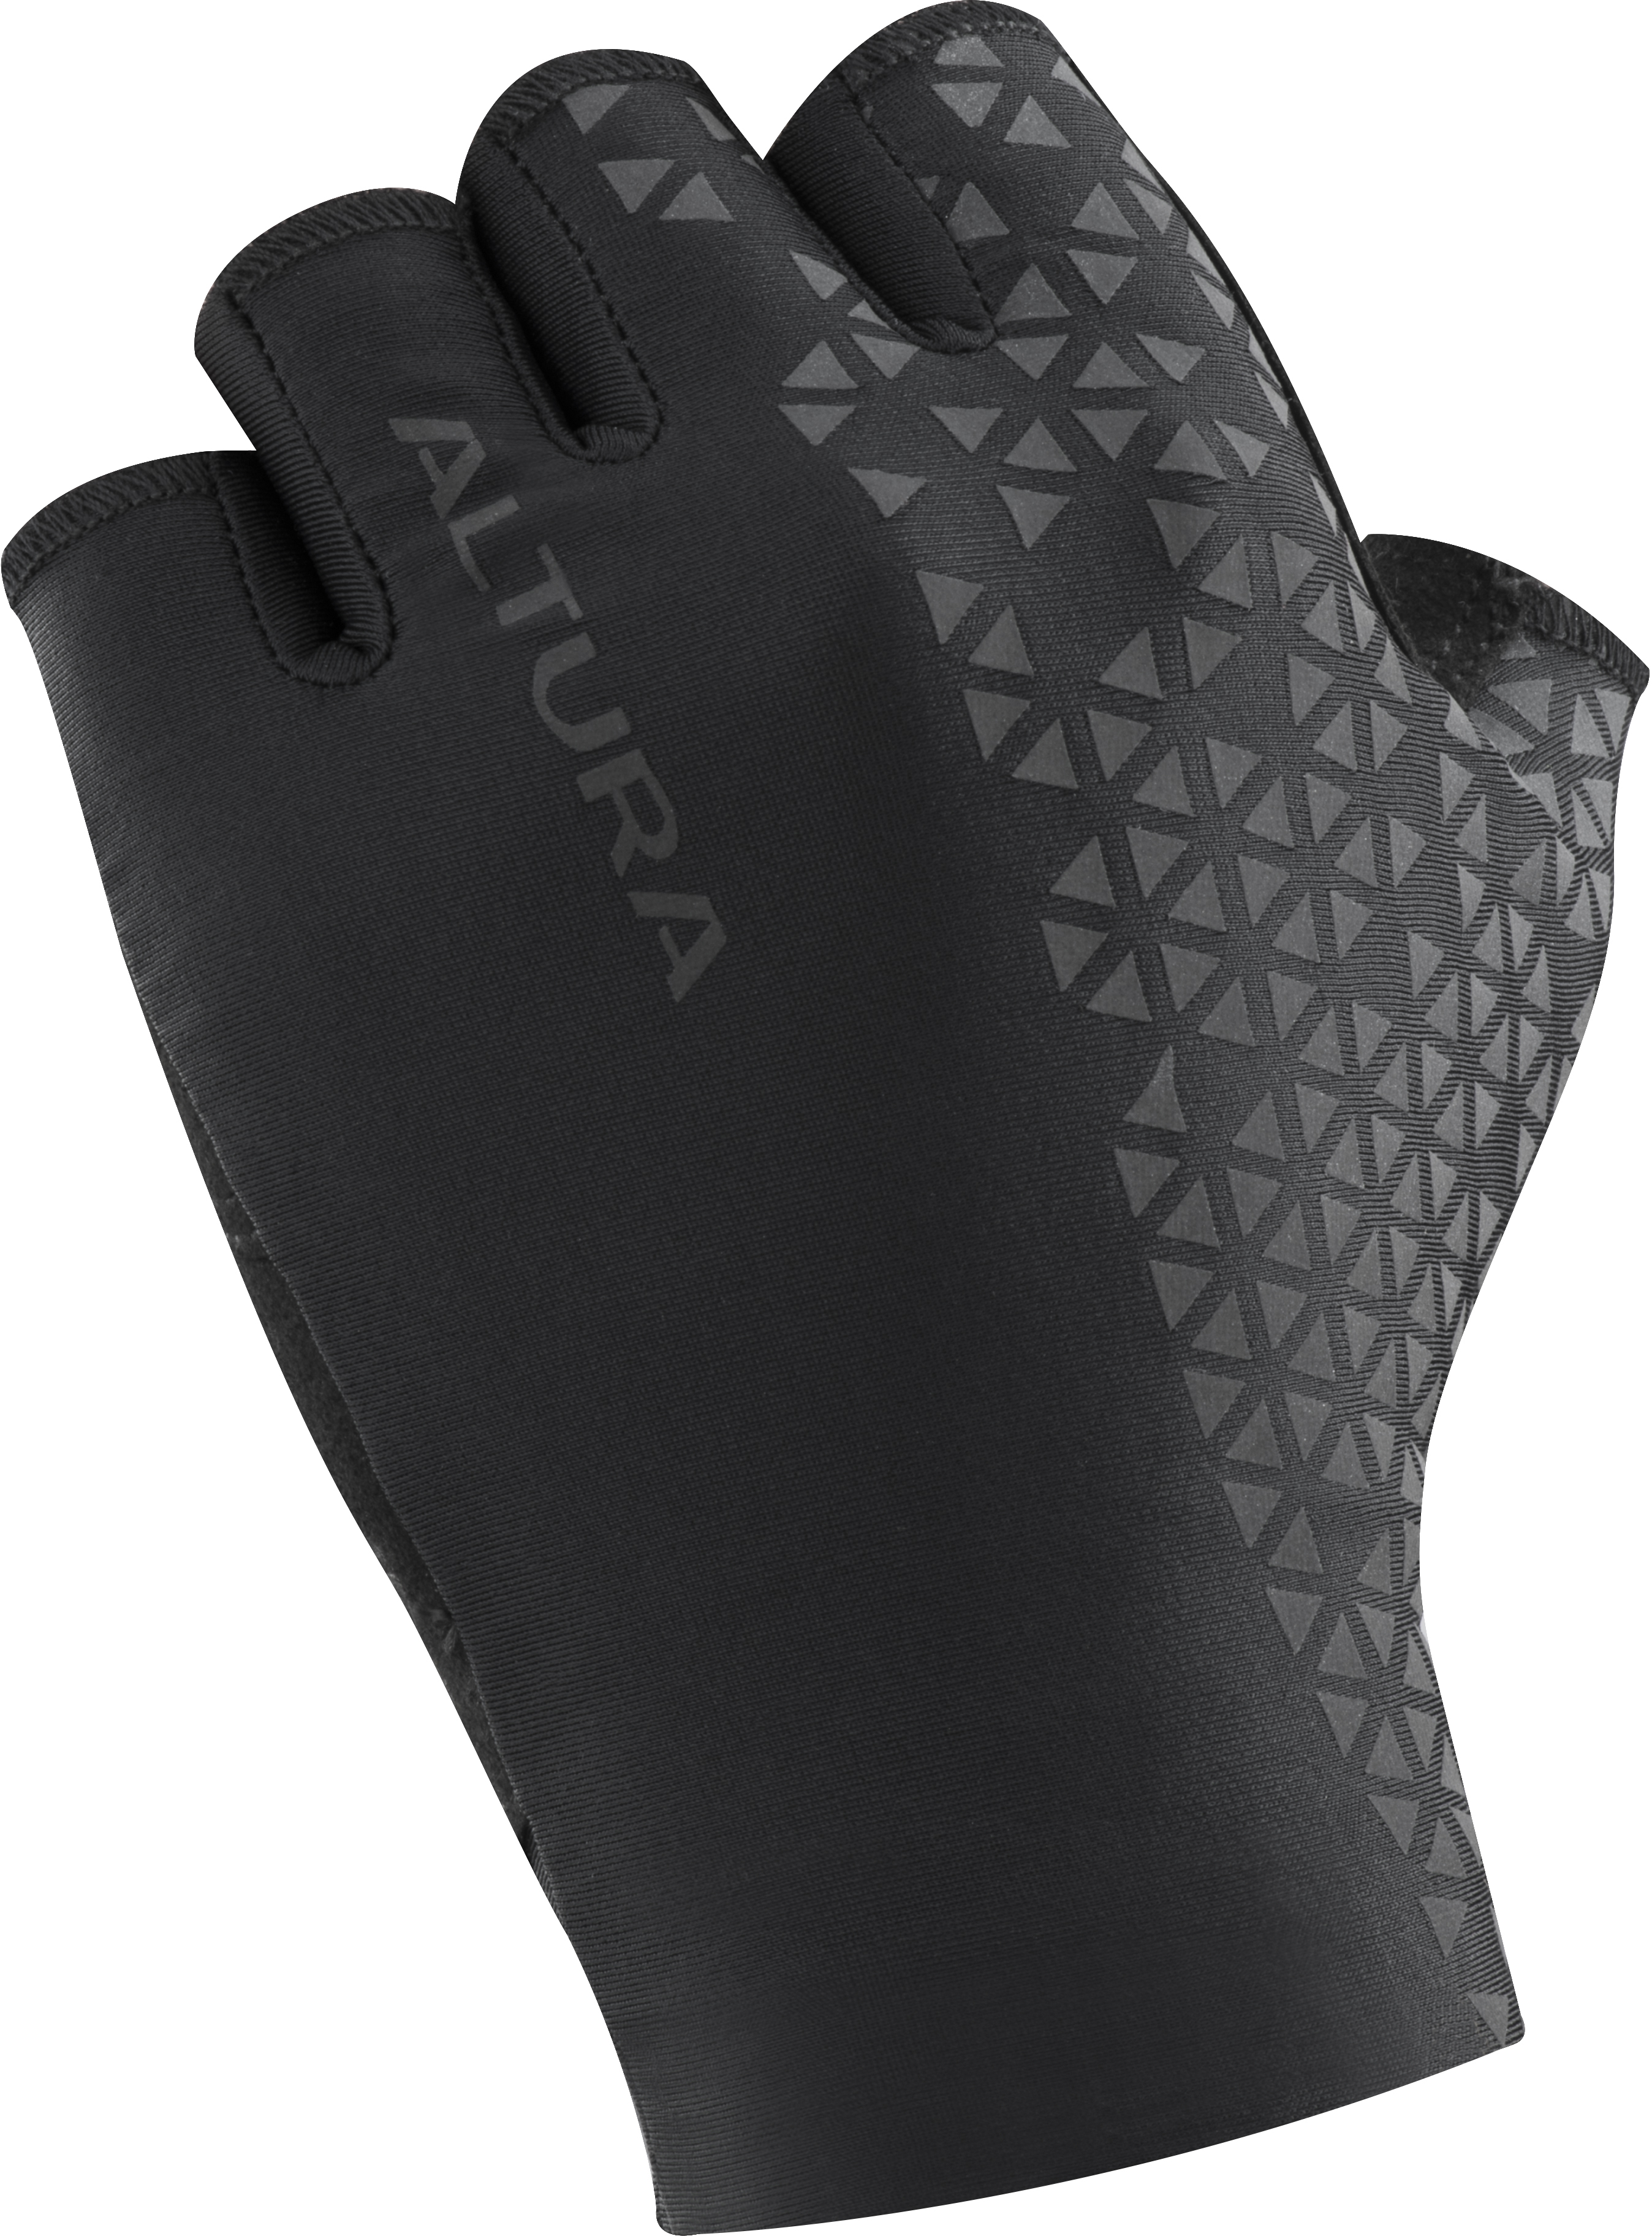 Altura Race Mitts | Gloves